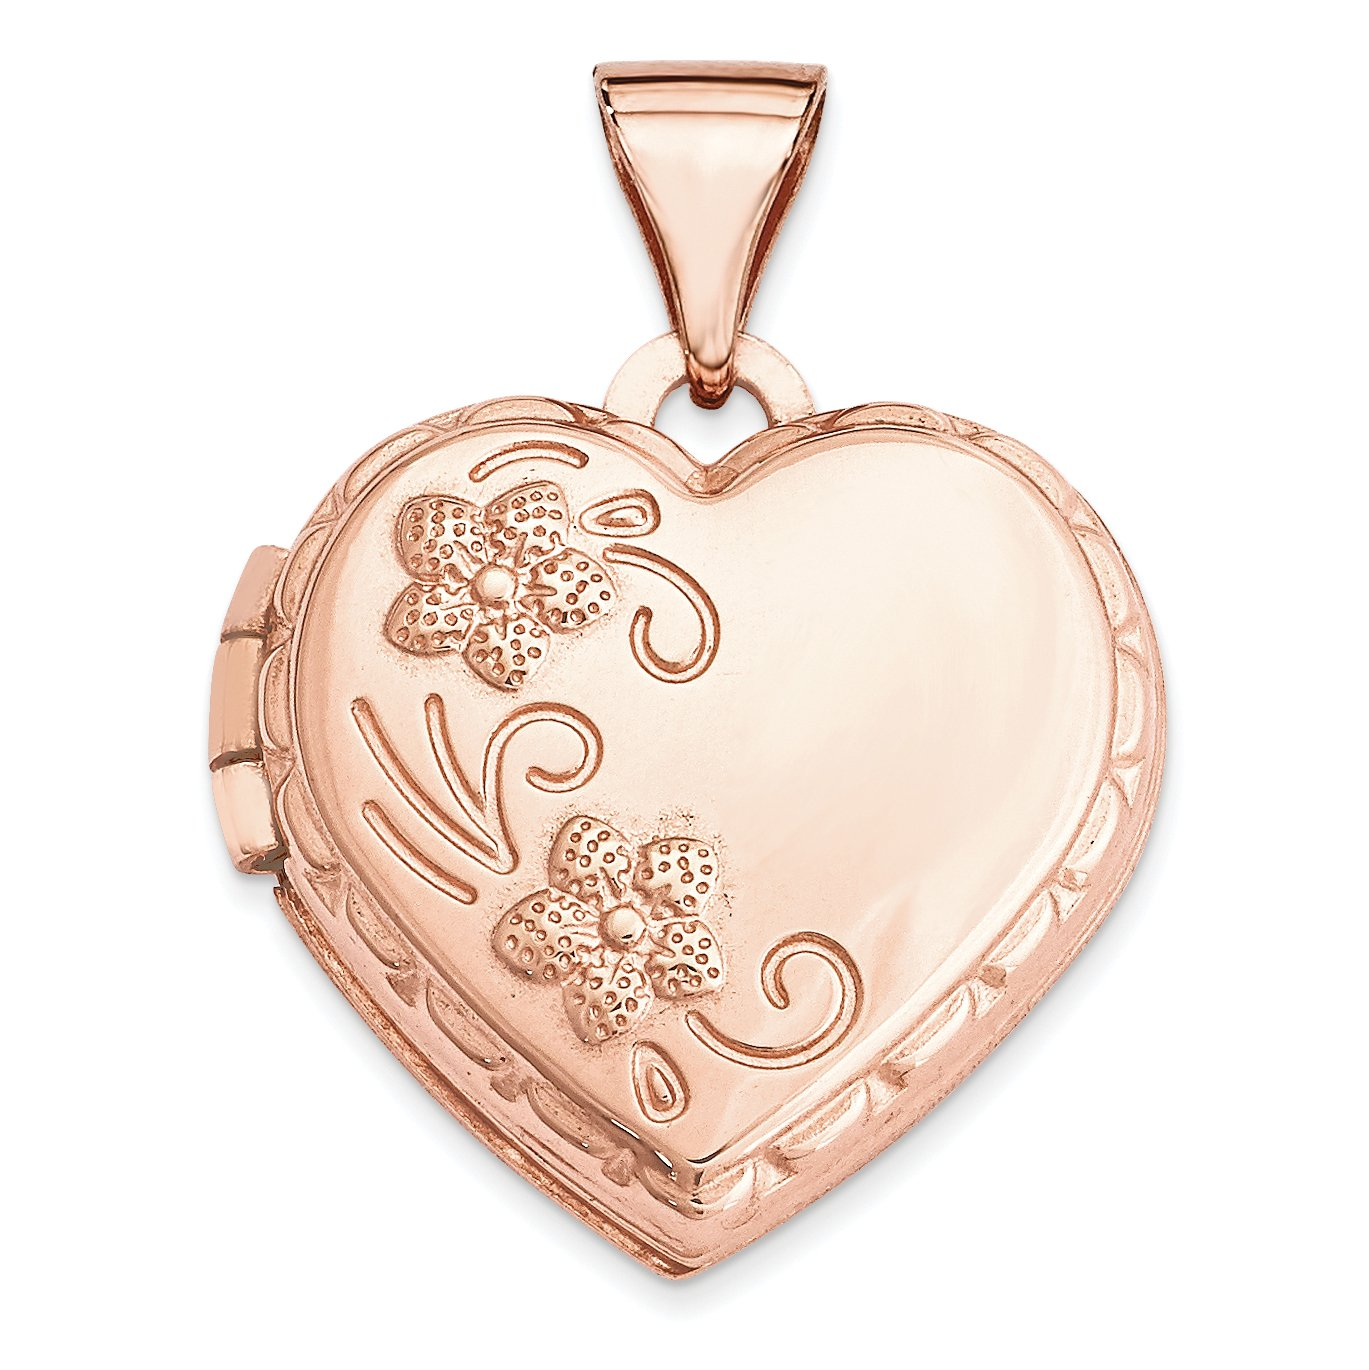 ICE CARATS 14k Rose Gold 15mm Domed Heart Photo Pendant Charm Locket Chain Necklace That Holds Pictures Fine Jewelry Gift Set For Women Heart